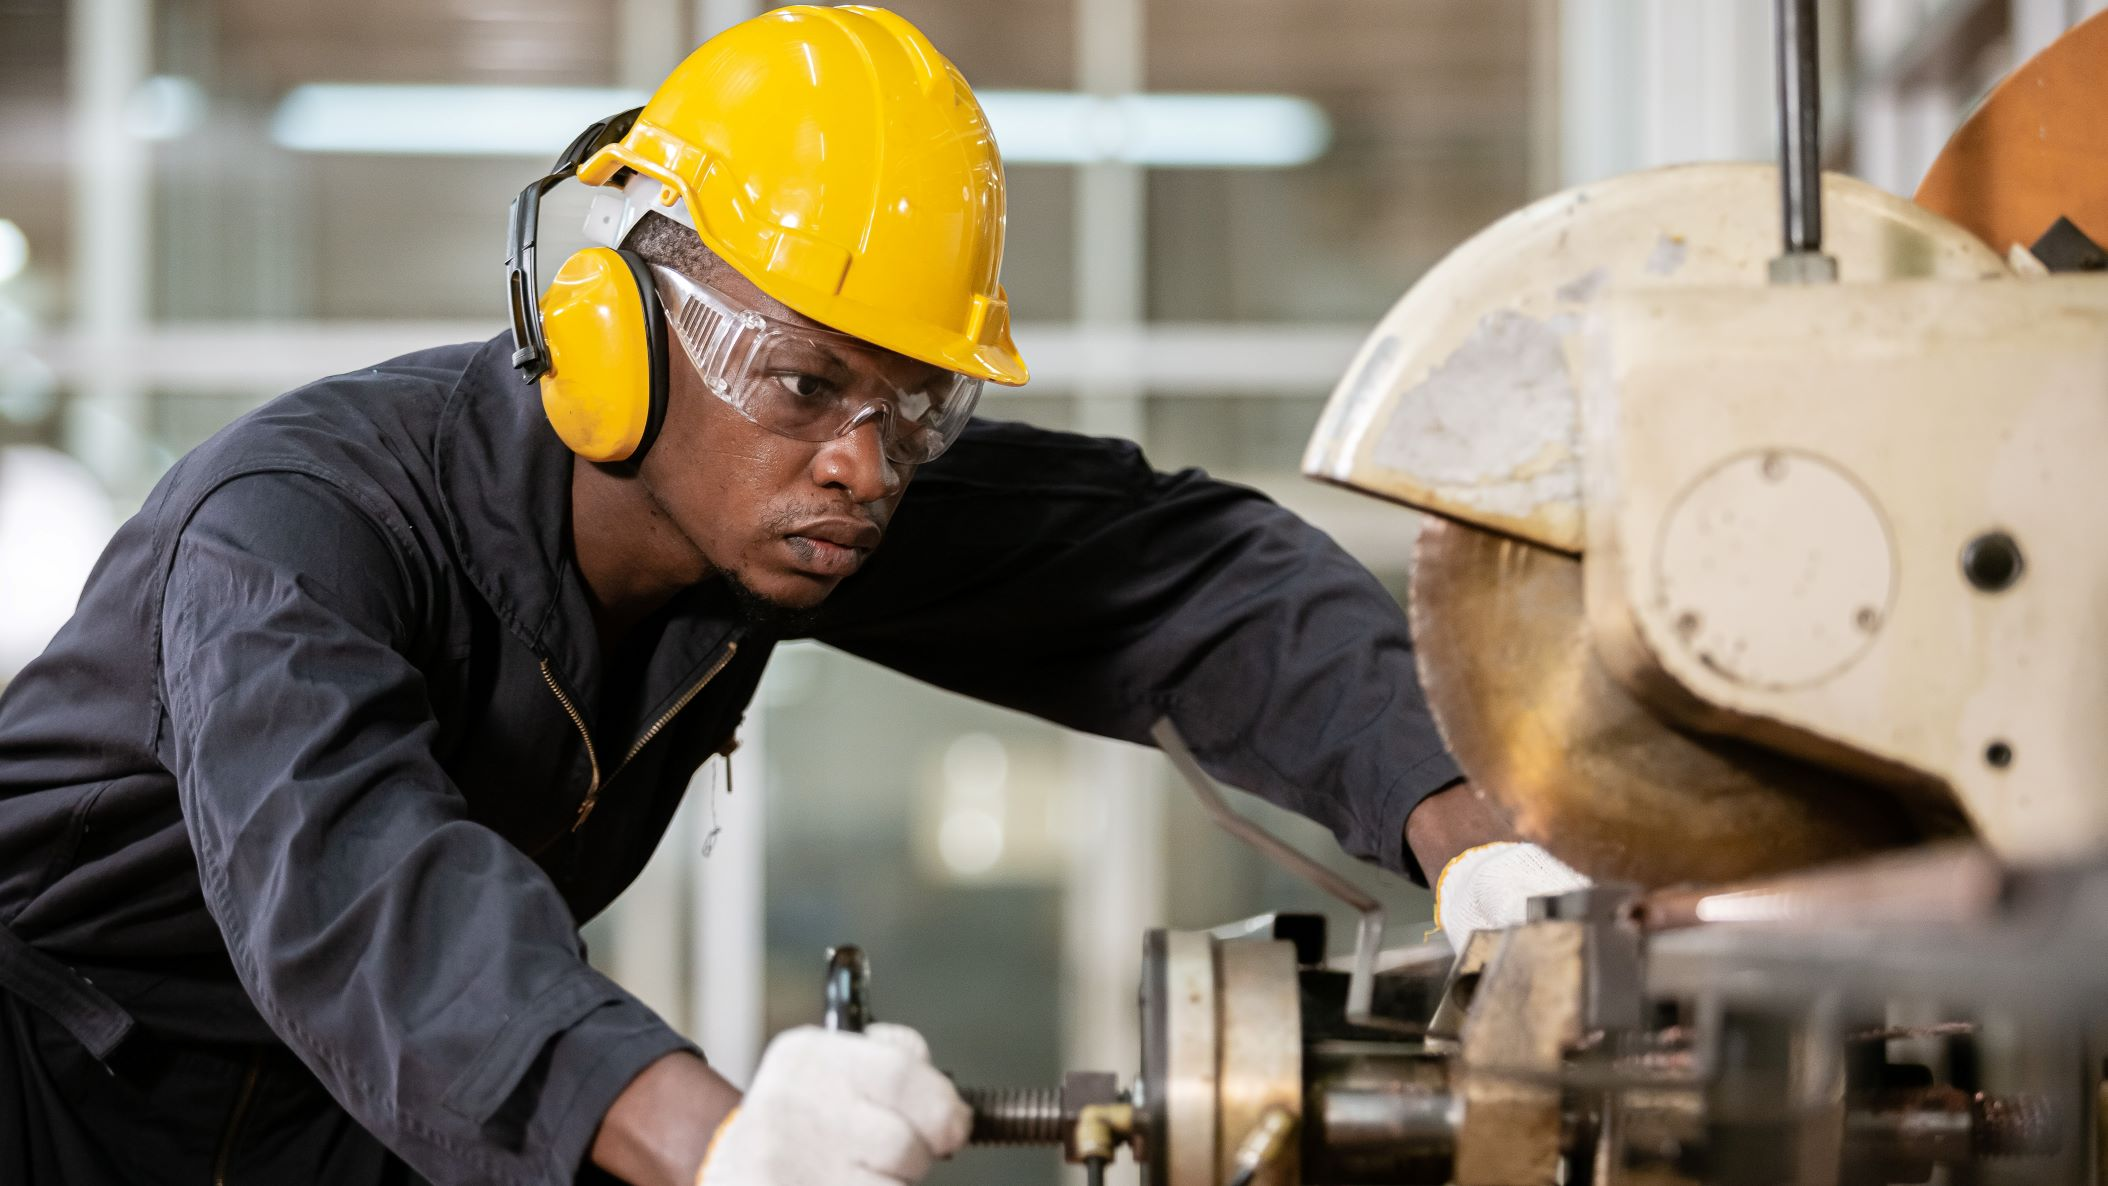 A black male wears soundproof headphones and yellow helmet working in an iron-cutting factory.